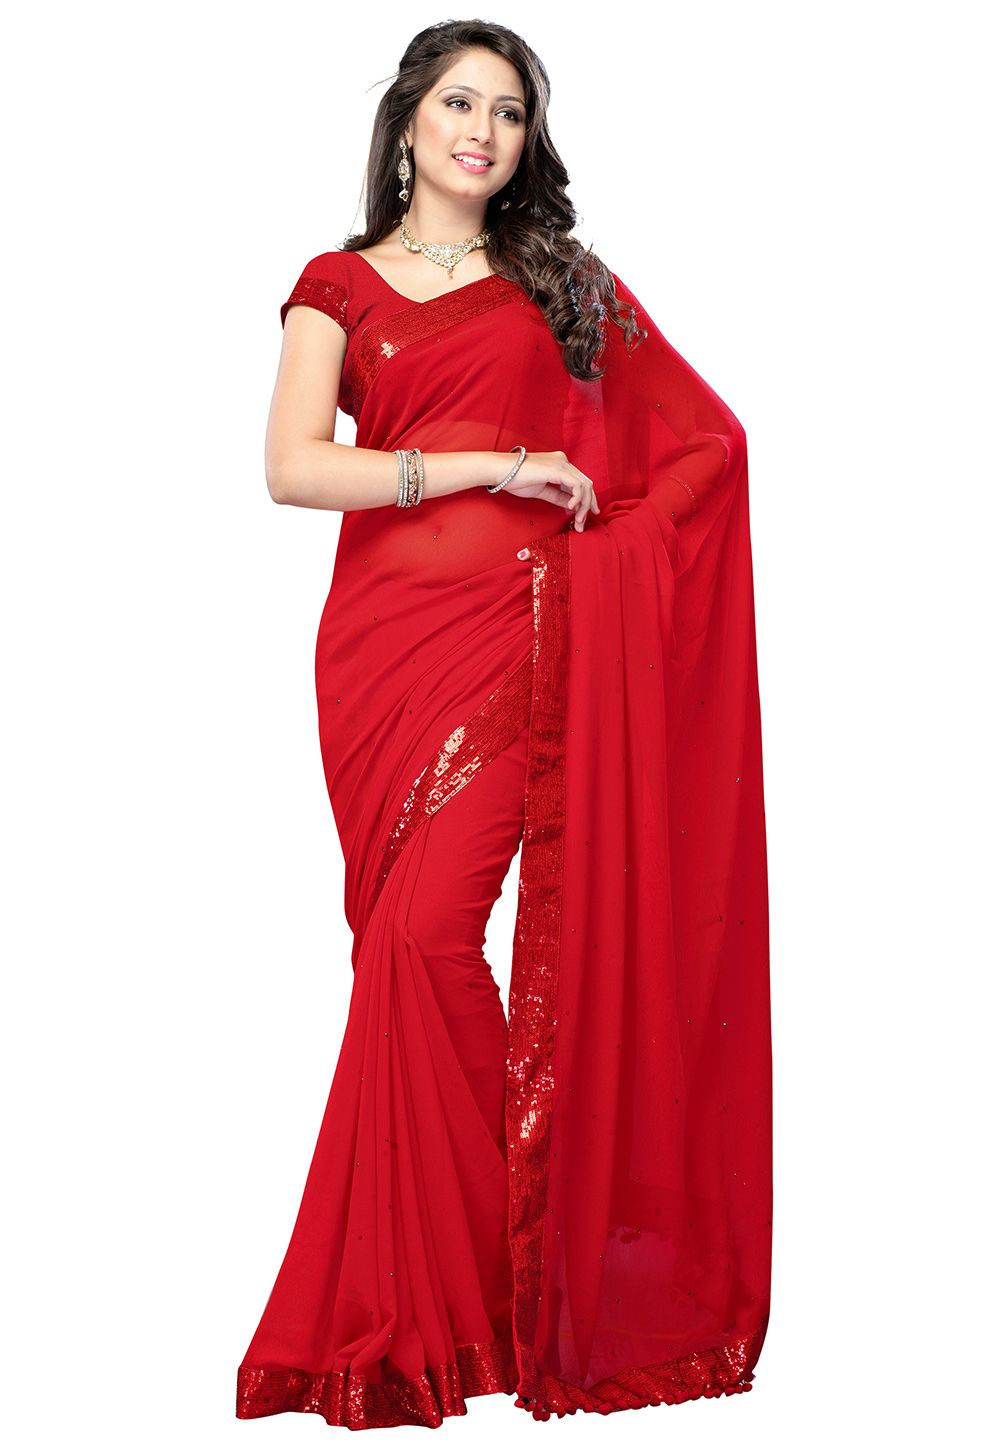 e82a762a32 Red #Saree with Blouse | Red Sarees | Saree, Chiffon saree, Red saree